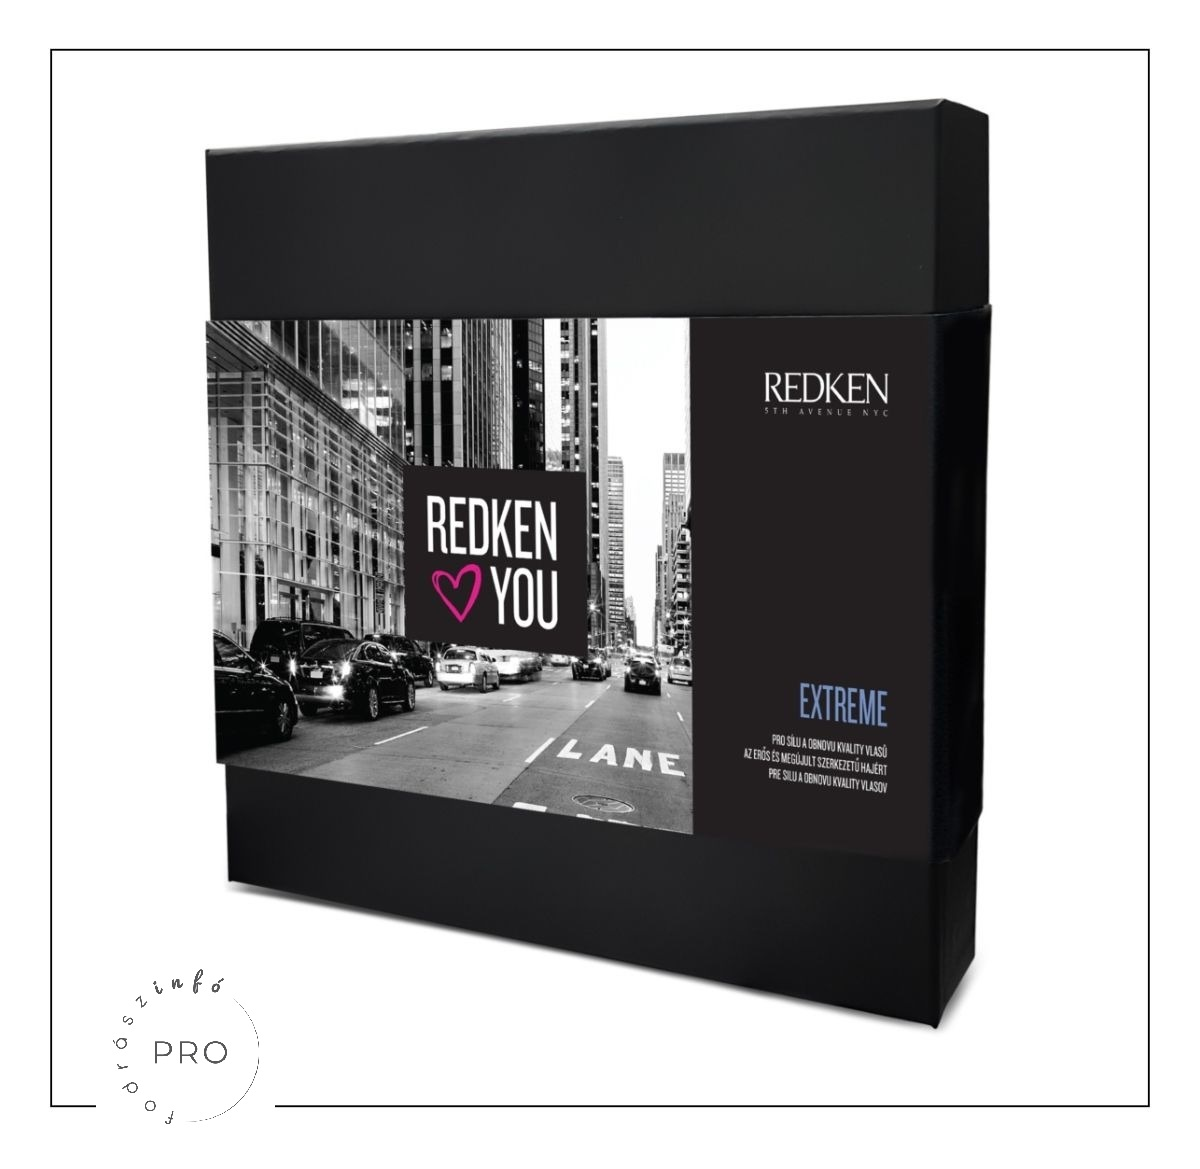 redken christmas bag